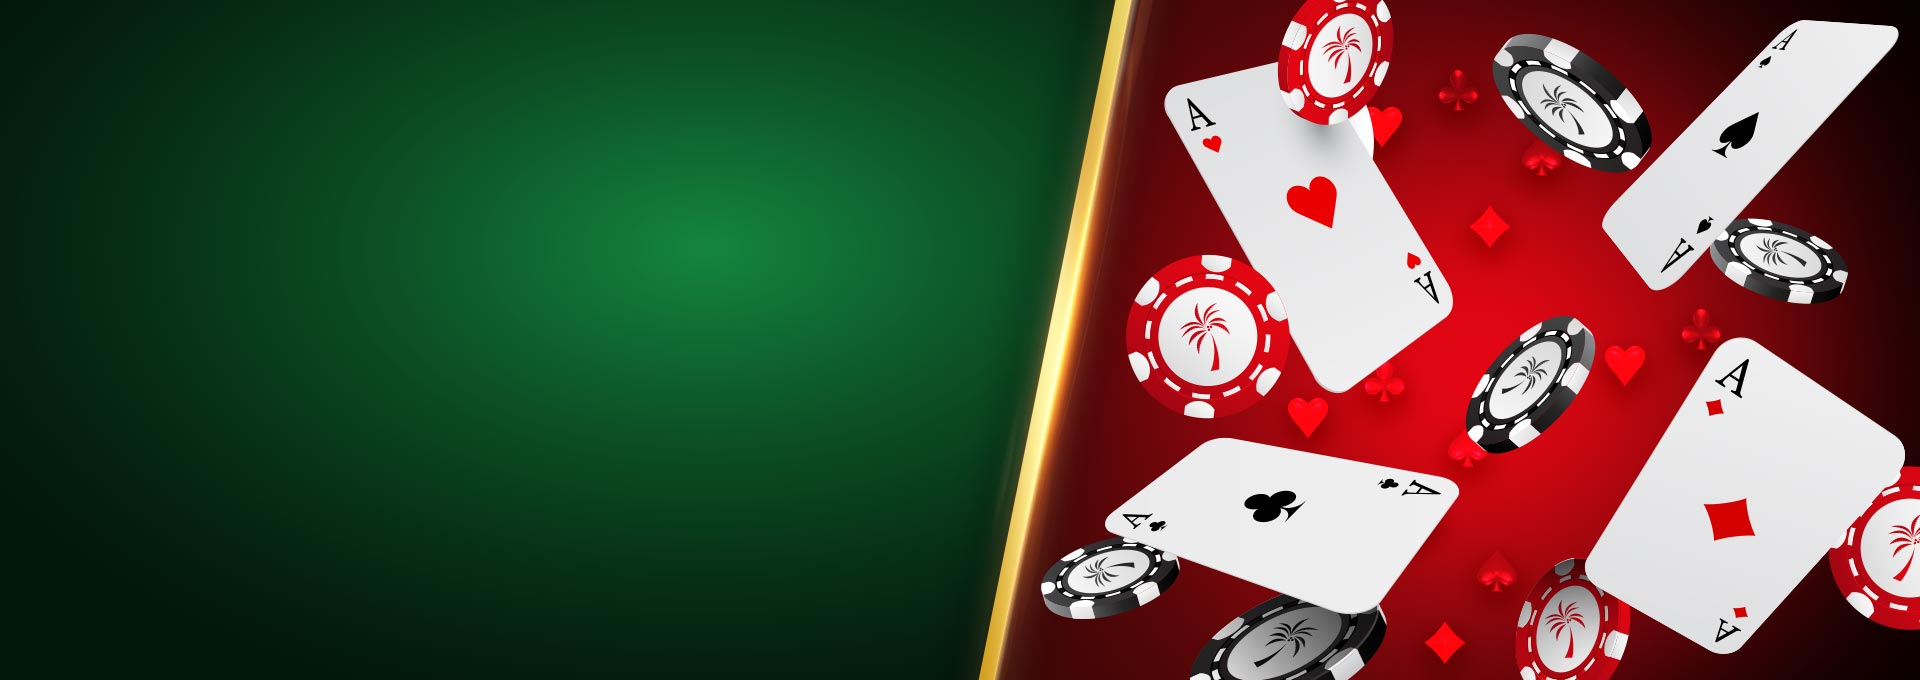 Advantages Of Playing on Online Casino Sites.